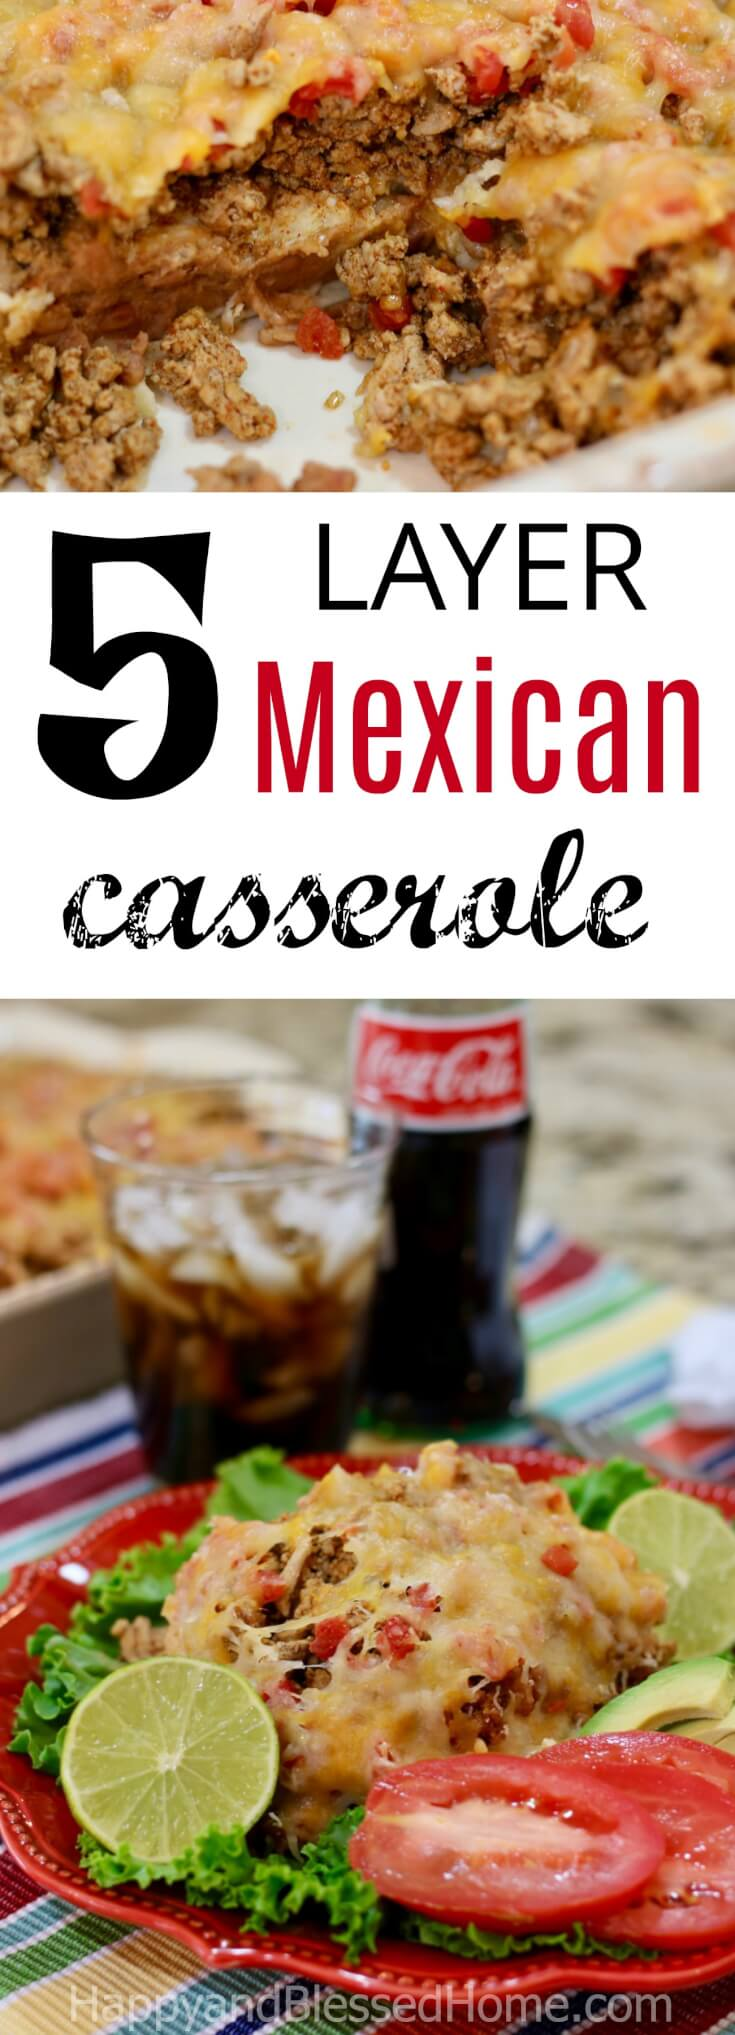 Easy Recipe for 5 Layer Mexican Casserole